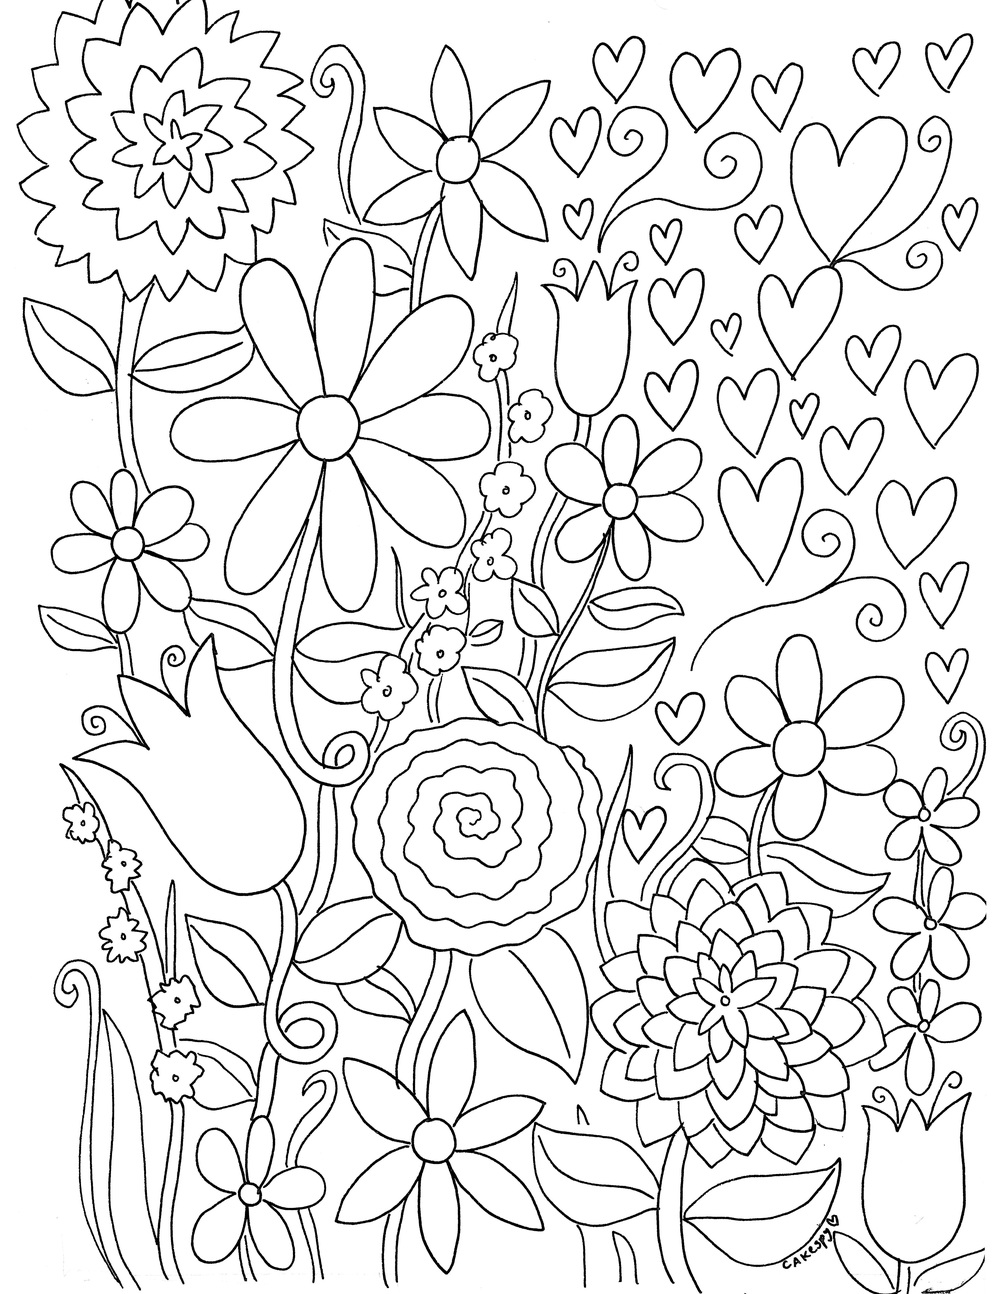 Free download: coloring book pages! Find them by clicking on the image.